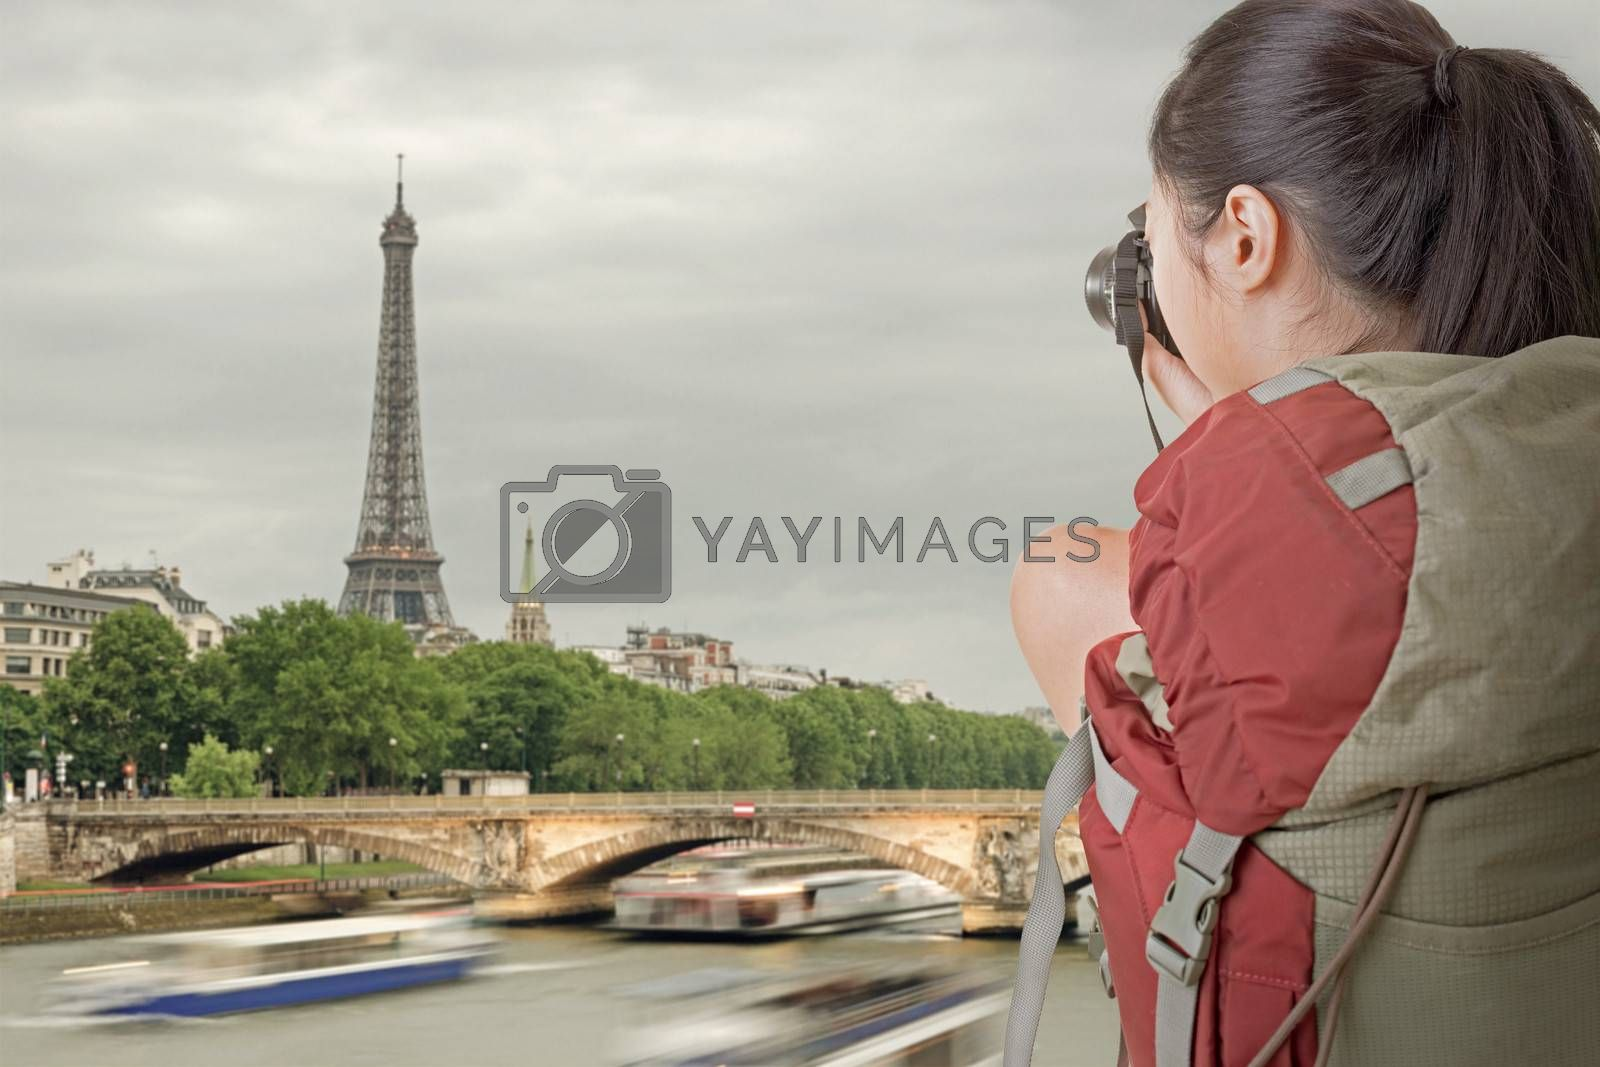 Young backpacker travel and take picture in Paris with famous Eiffel Tower.